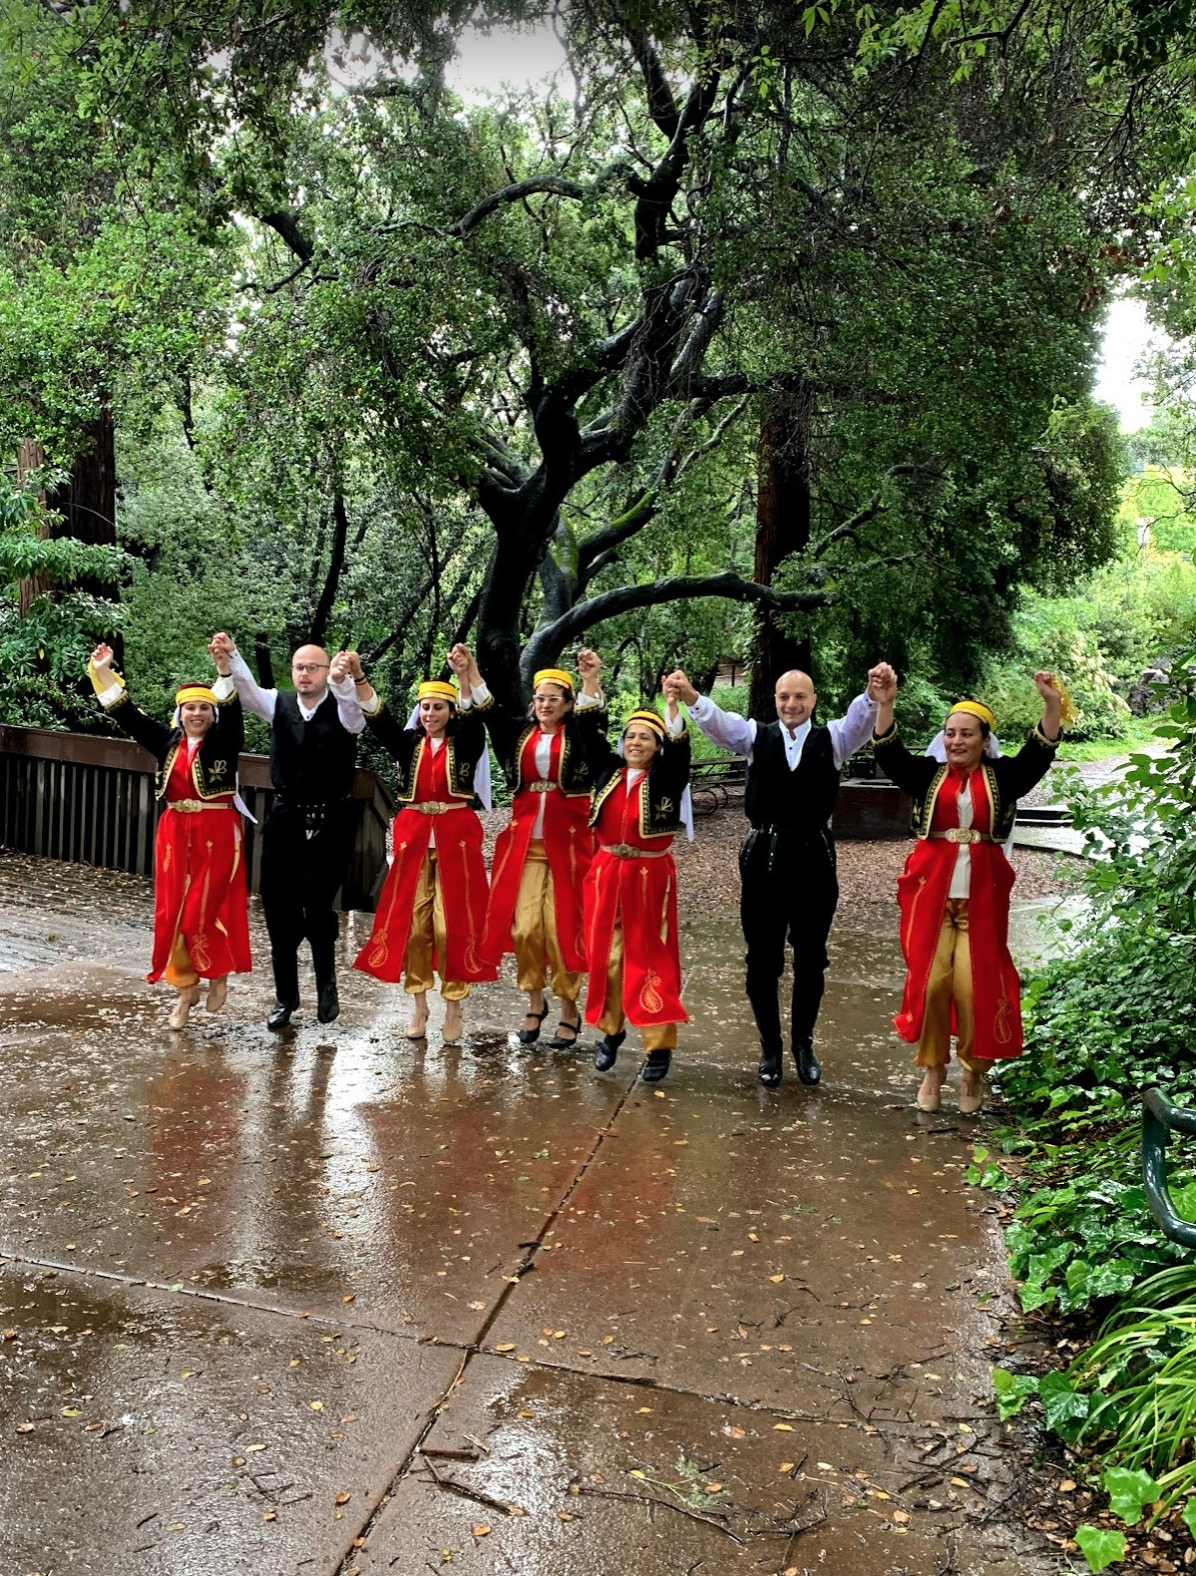 Berkeley Turkish School Folk Dance team dancing to ATABARI dance May 19, 2019, at 9:19 AM Joining  100 groups, 19 countries live performance.